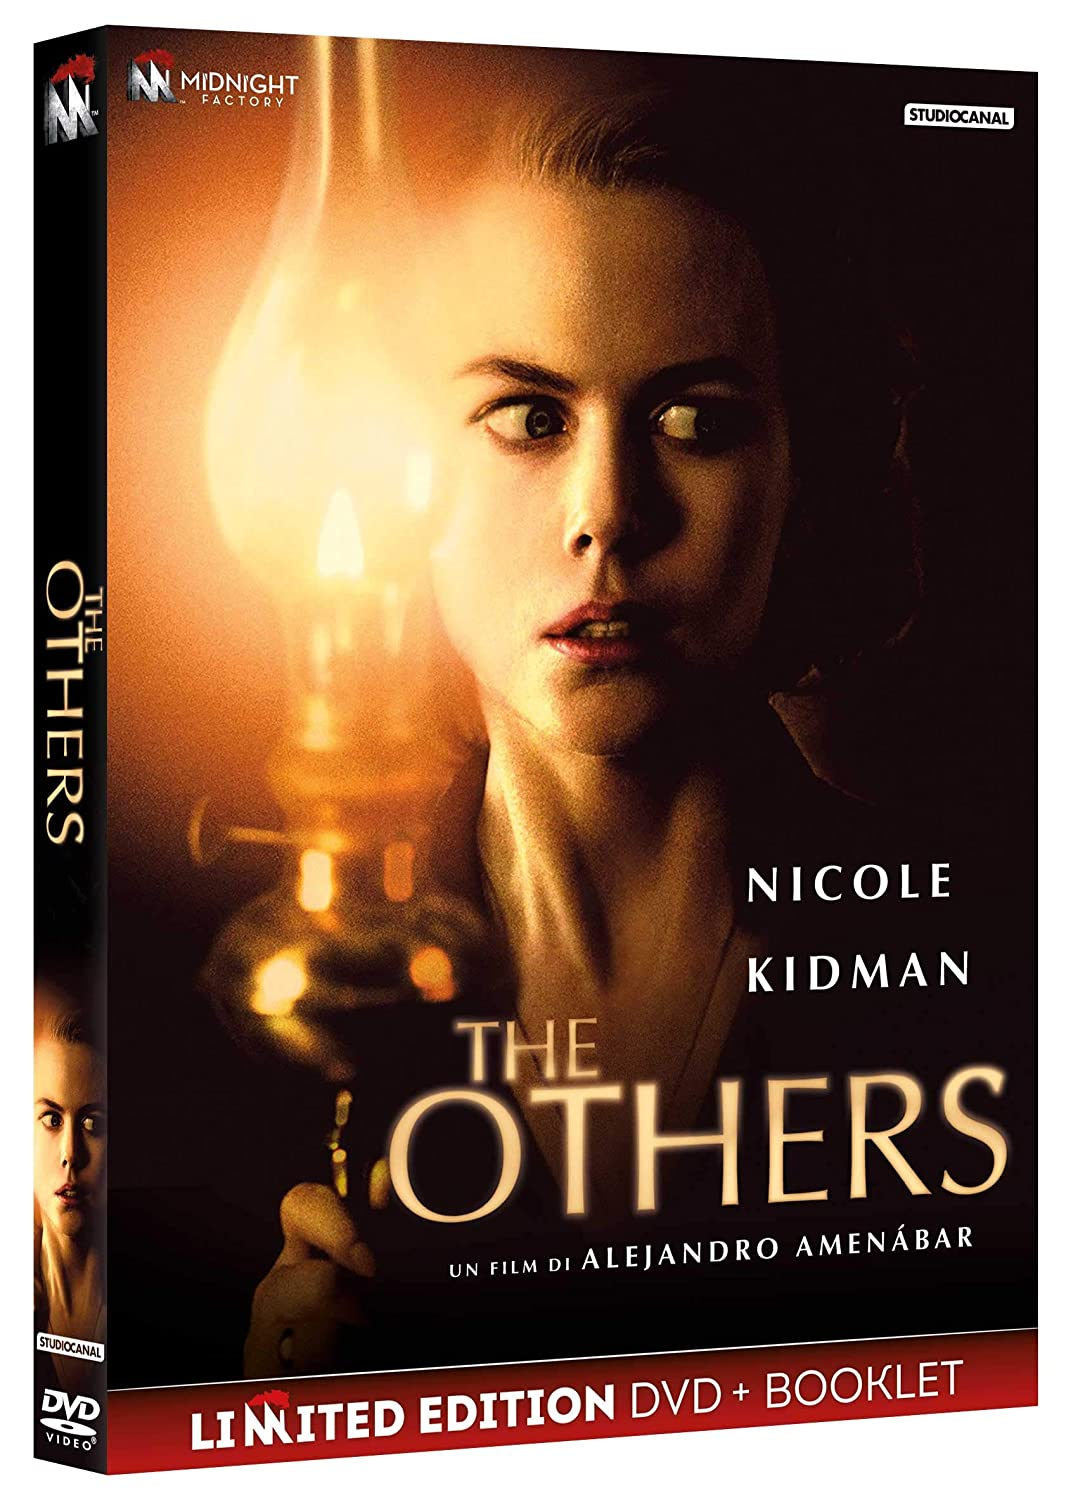 THE OTHERS (DVD+BOOKLET) (DVD)